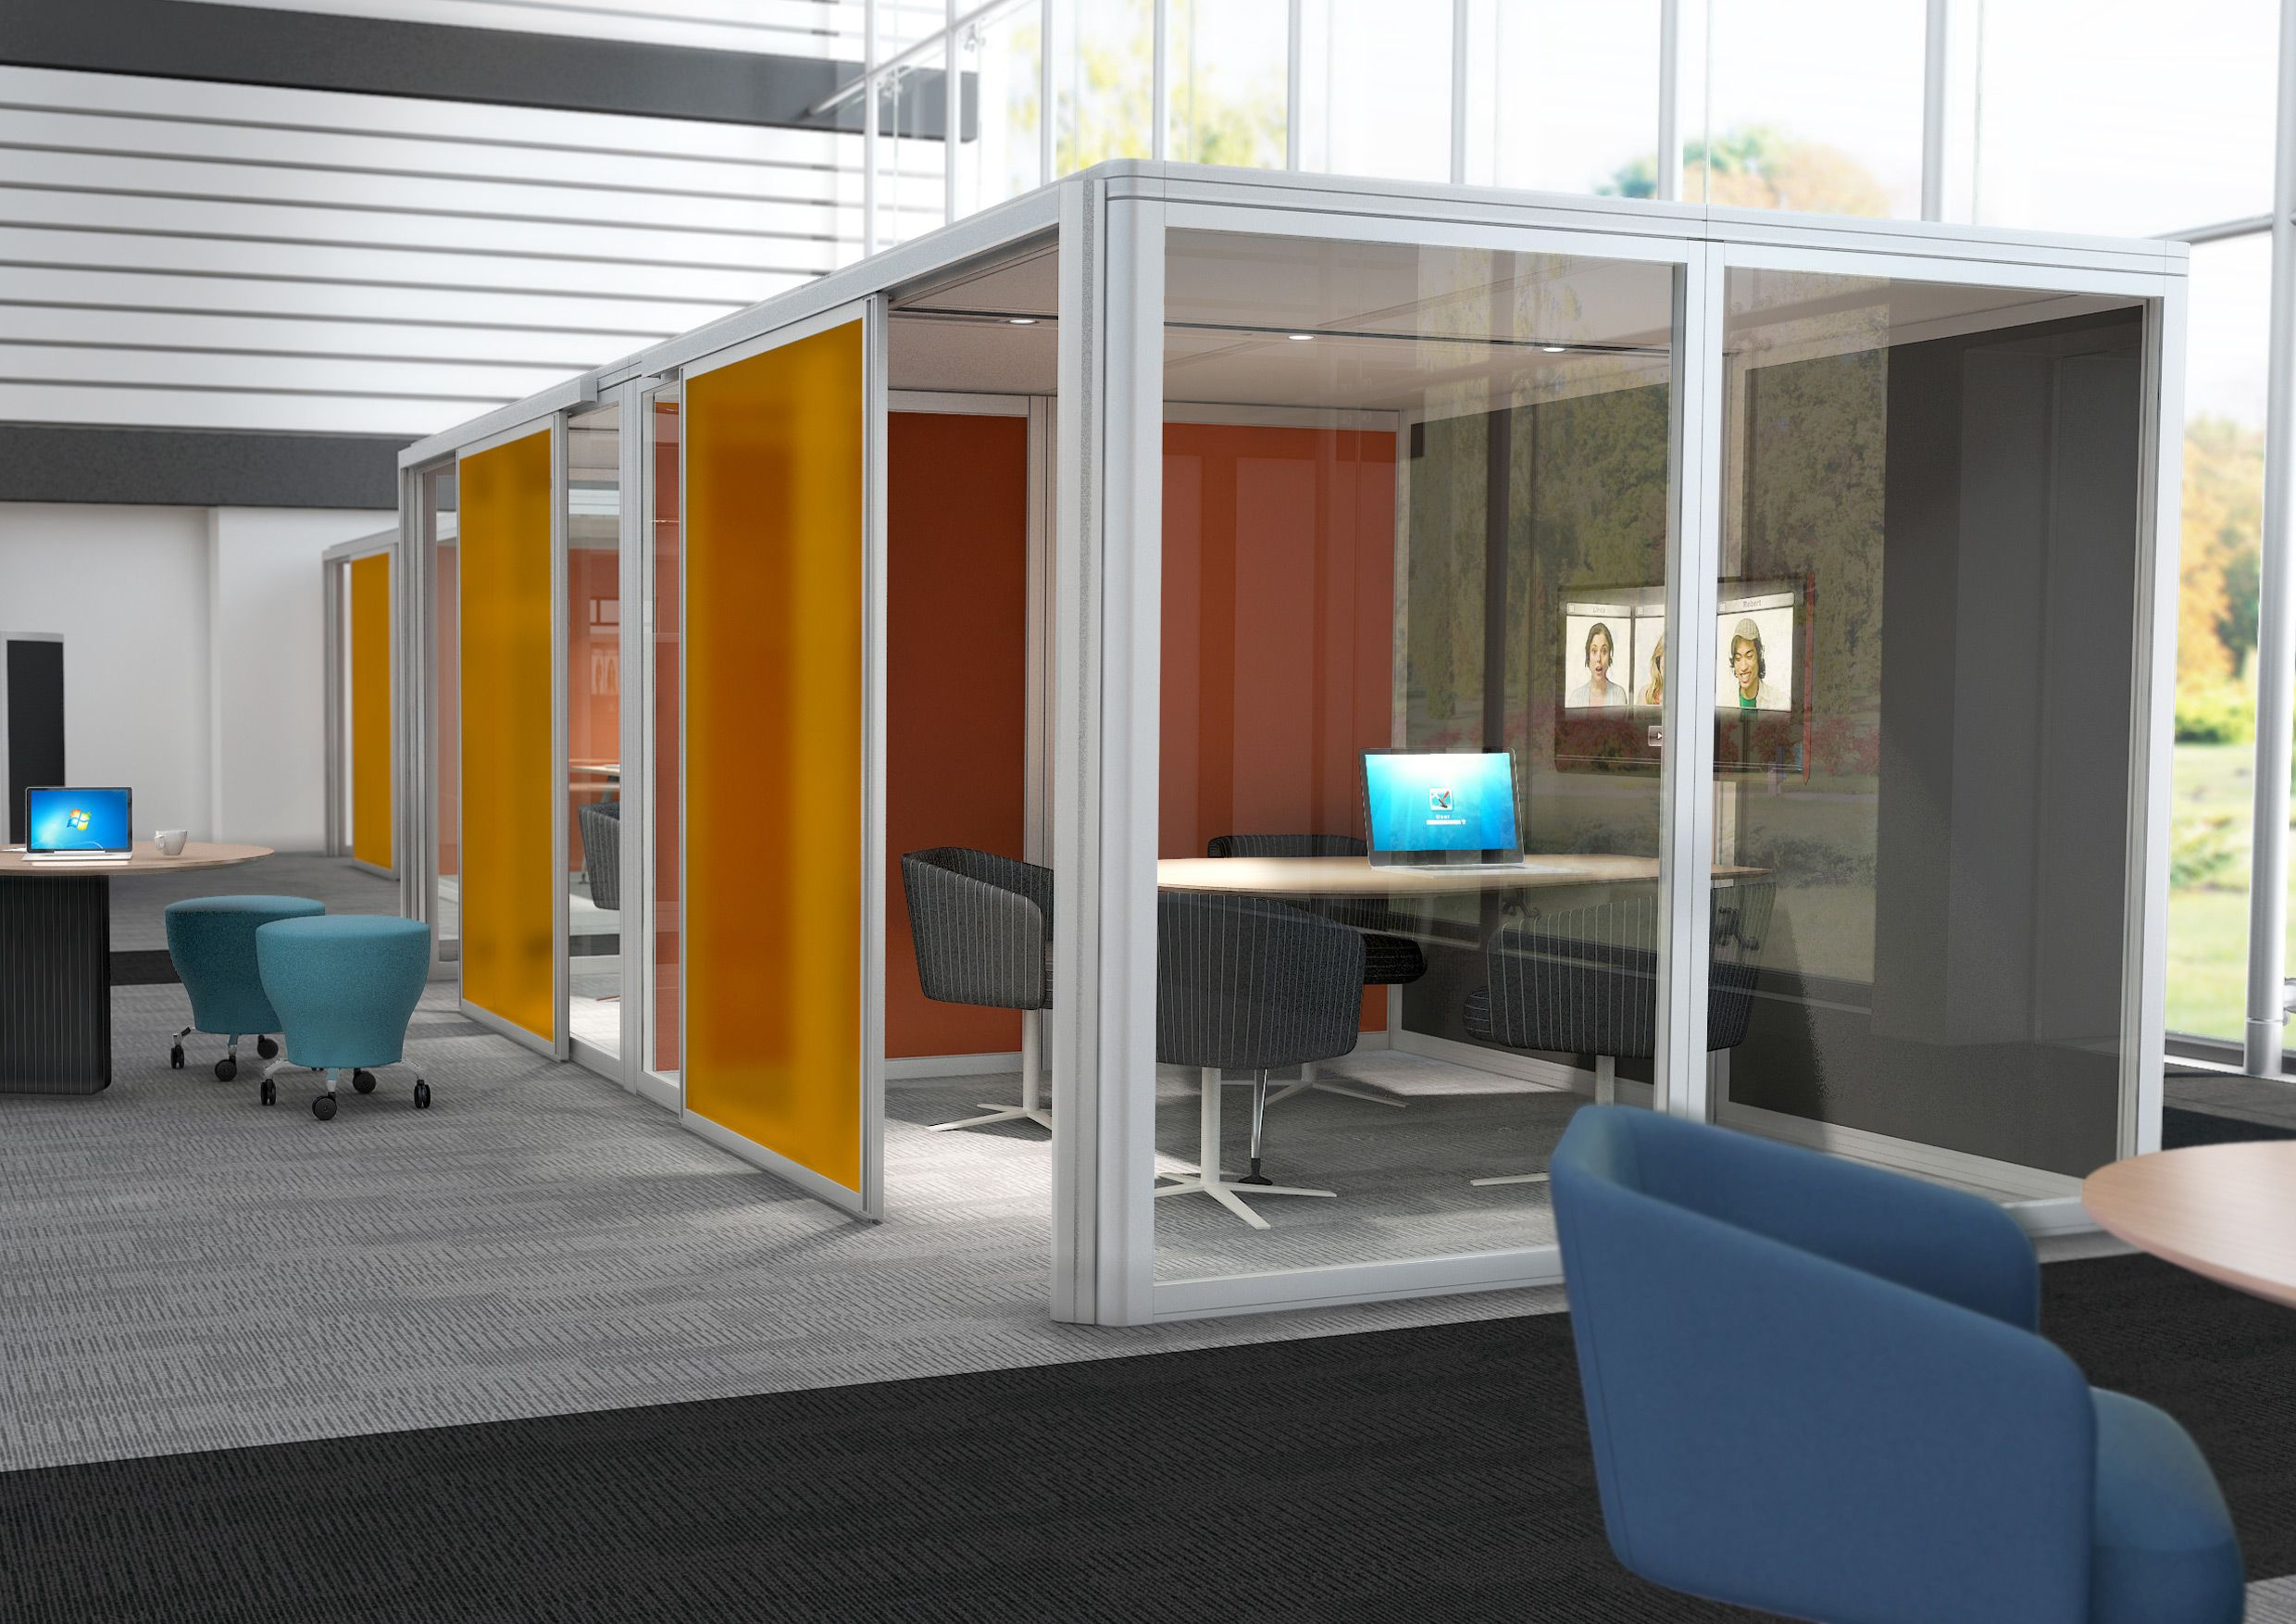 The Airea acoustic pod provides an alternative solution for a variety of private spaces ranging from a phone booth to a video conference room as well as general meeting rooms.